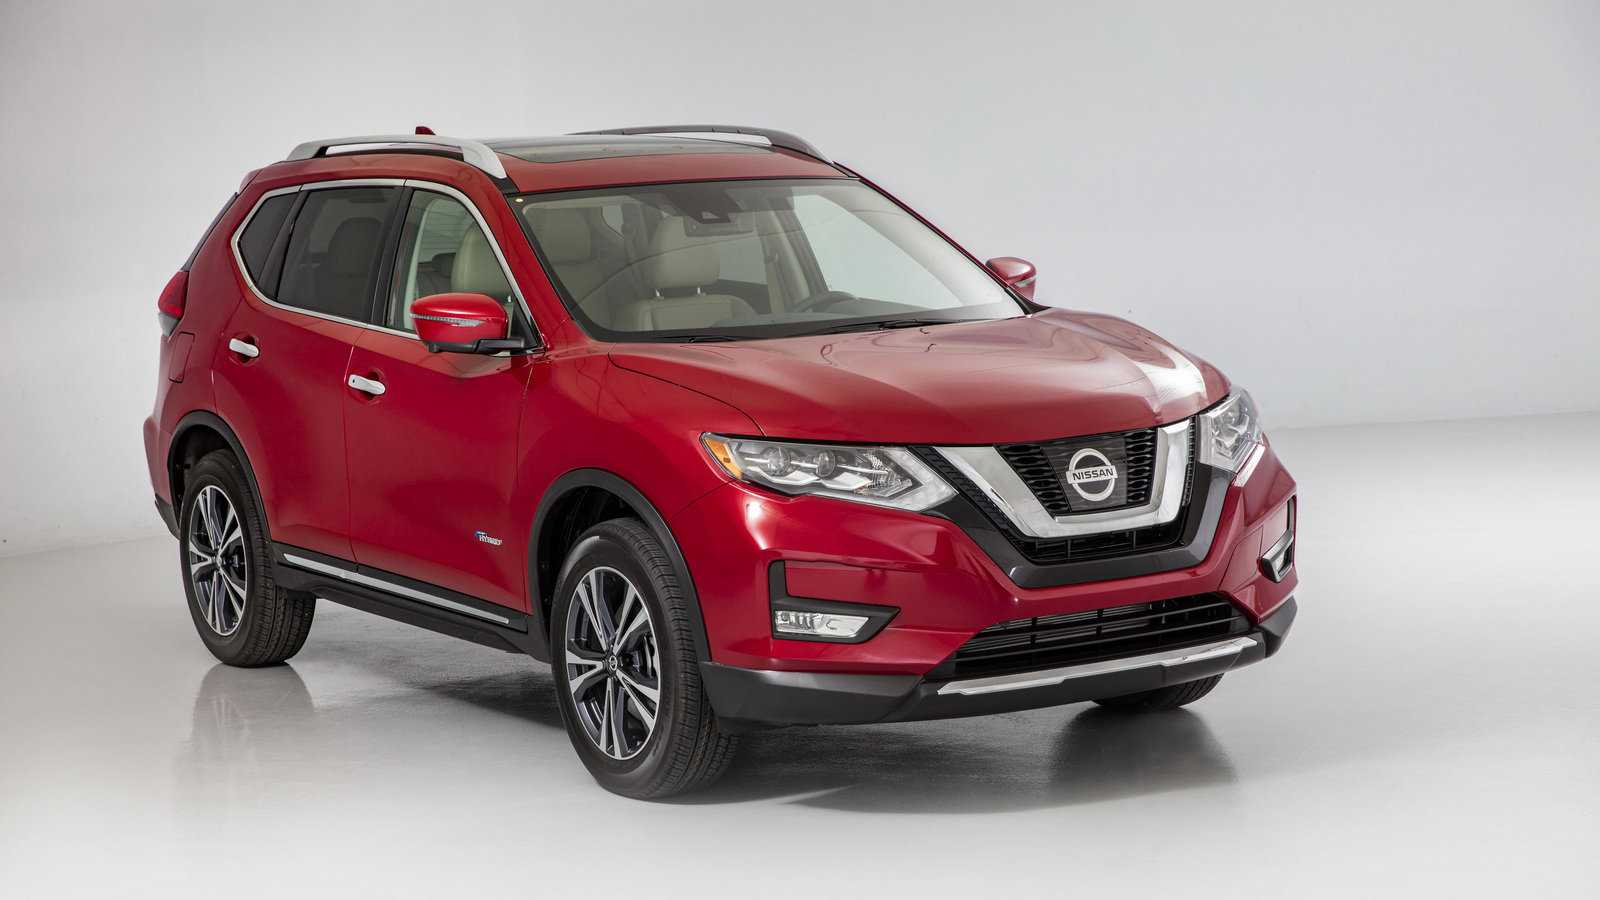 The 2017 Nissan Rogue Hybrid – The Much-Awaited Fuel-Stingy SUV With Loads Of Cargo Space